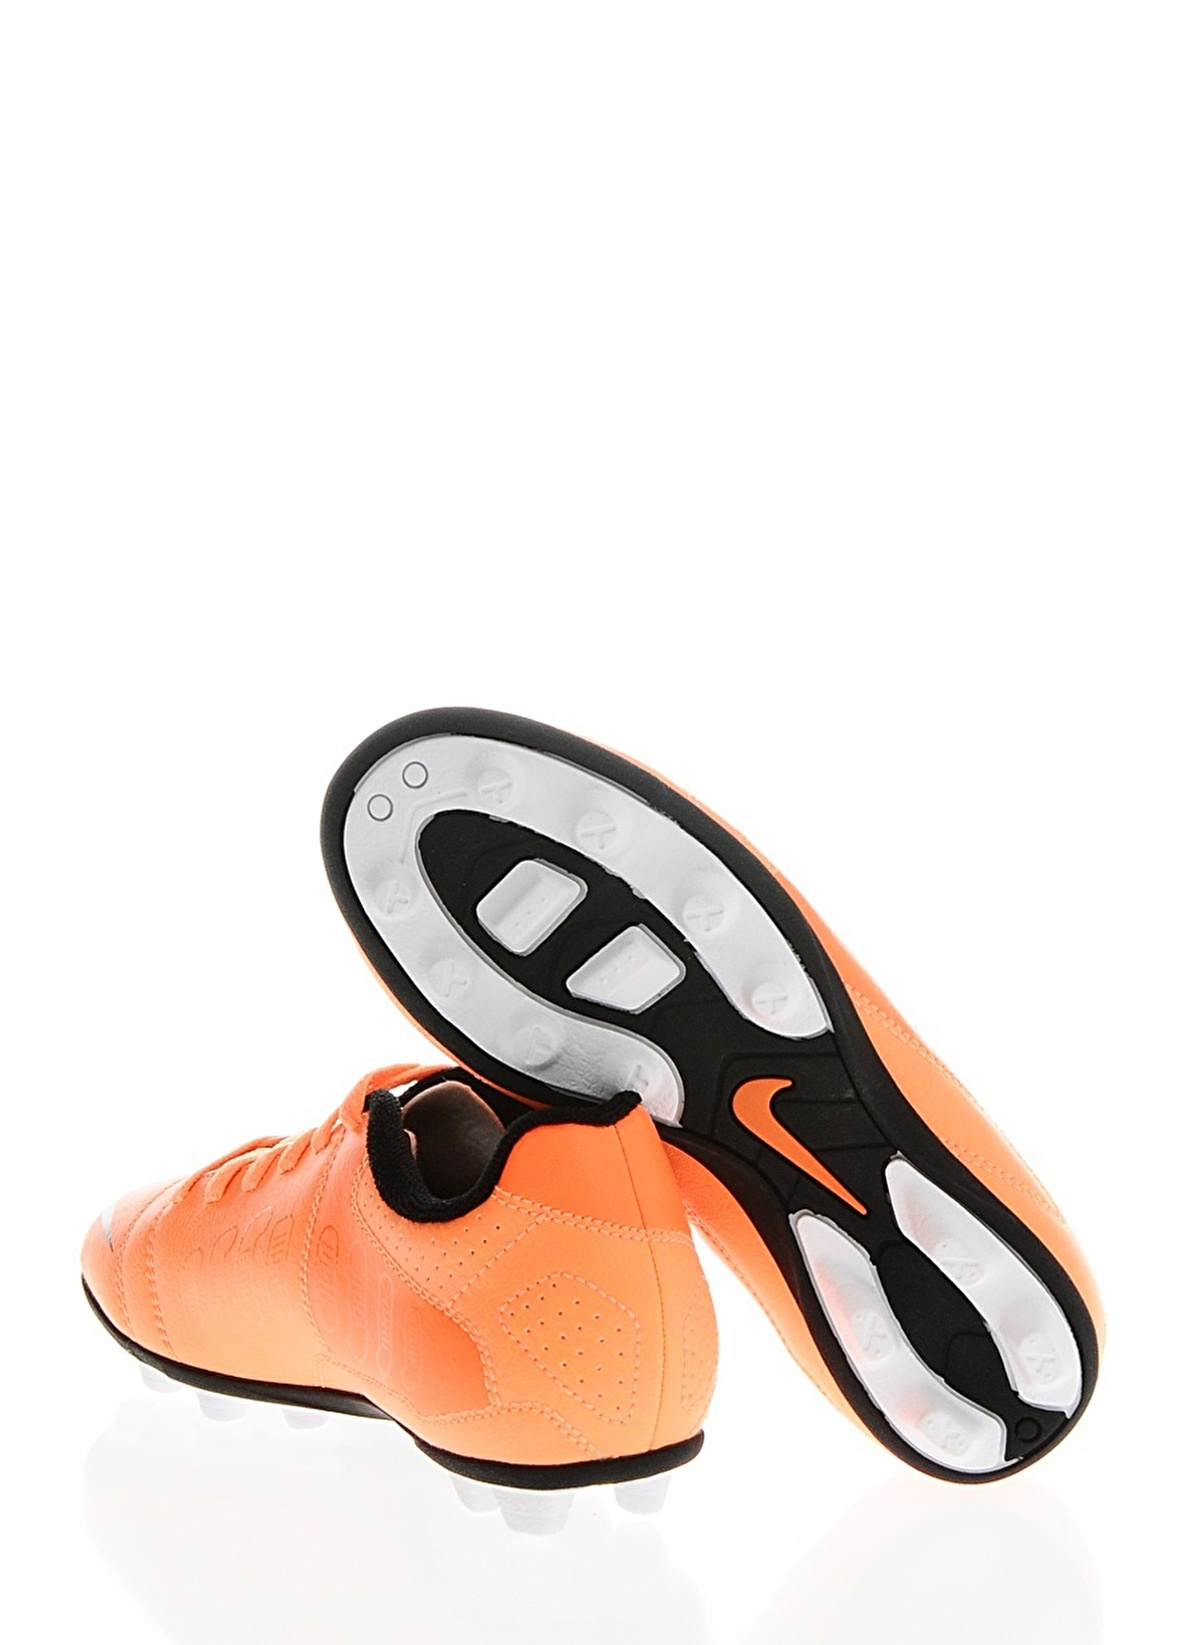 Nike Erkek Çocuk Jr Ctr360 Enganch Atomic Orange Black-Chrm-White ... 1ddc508c7619c